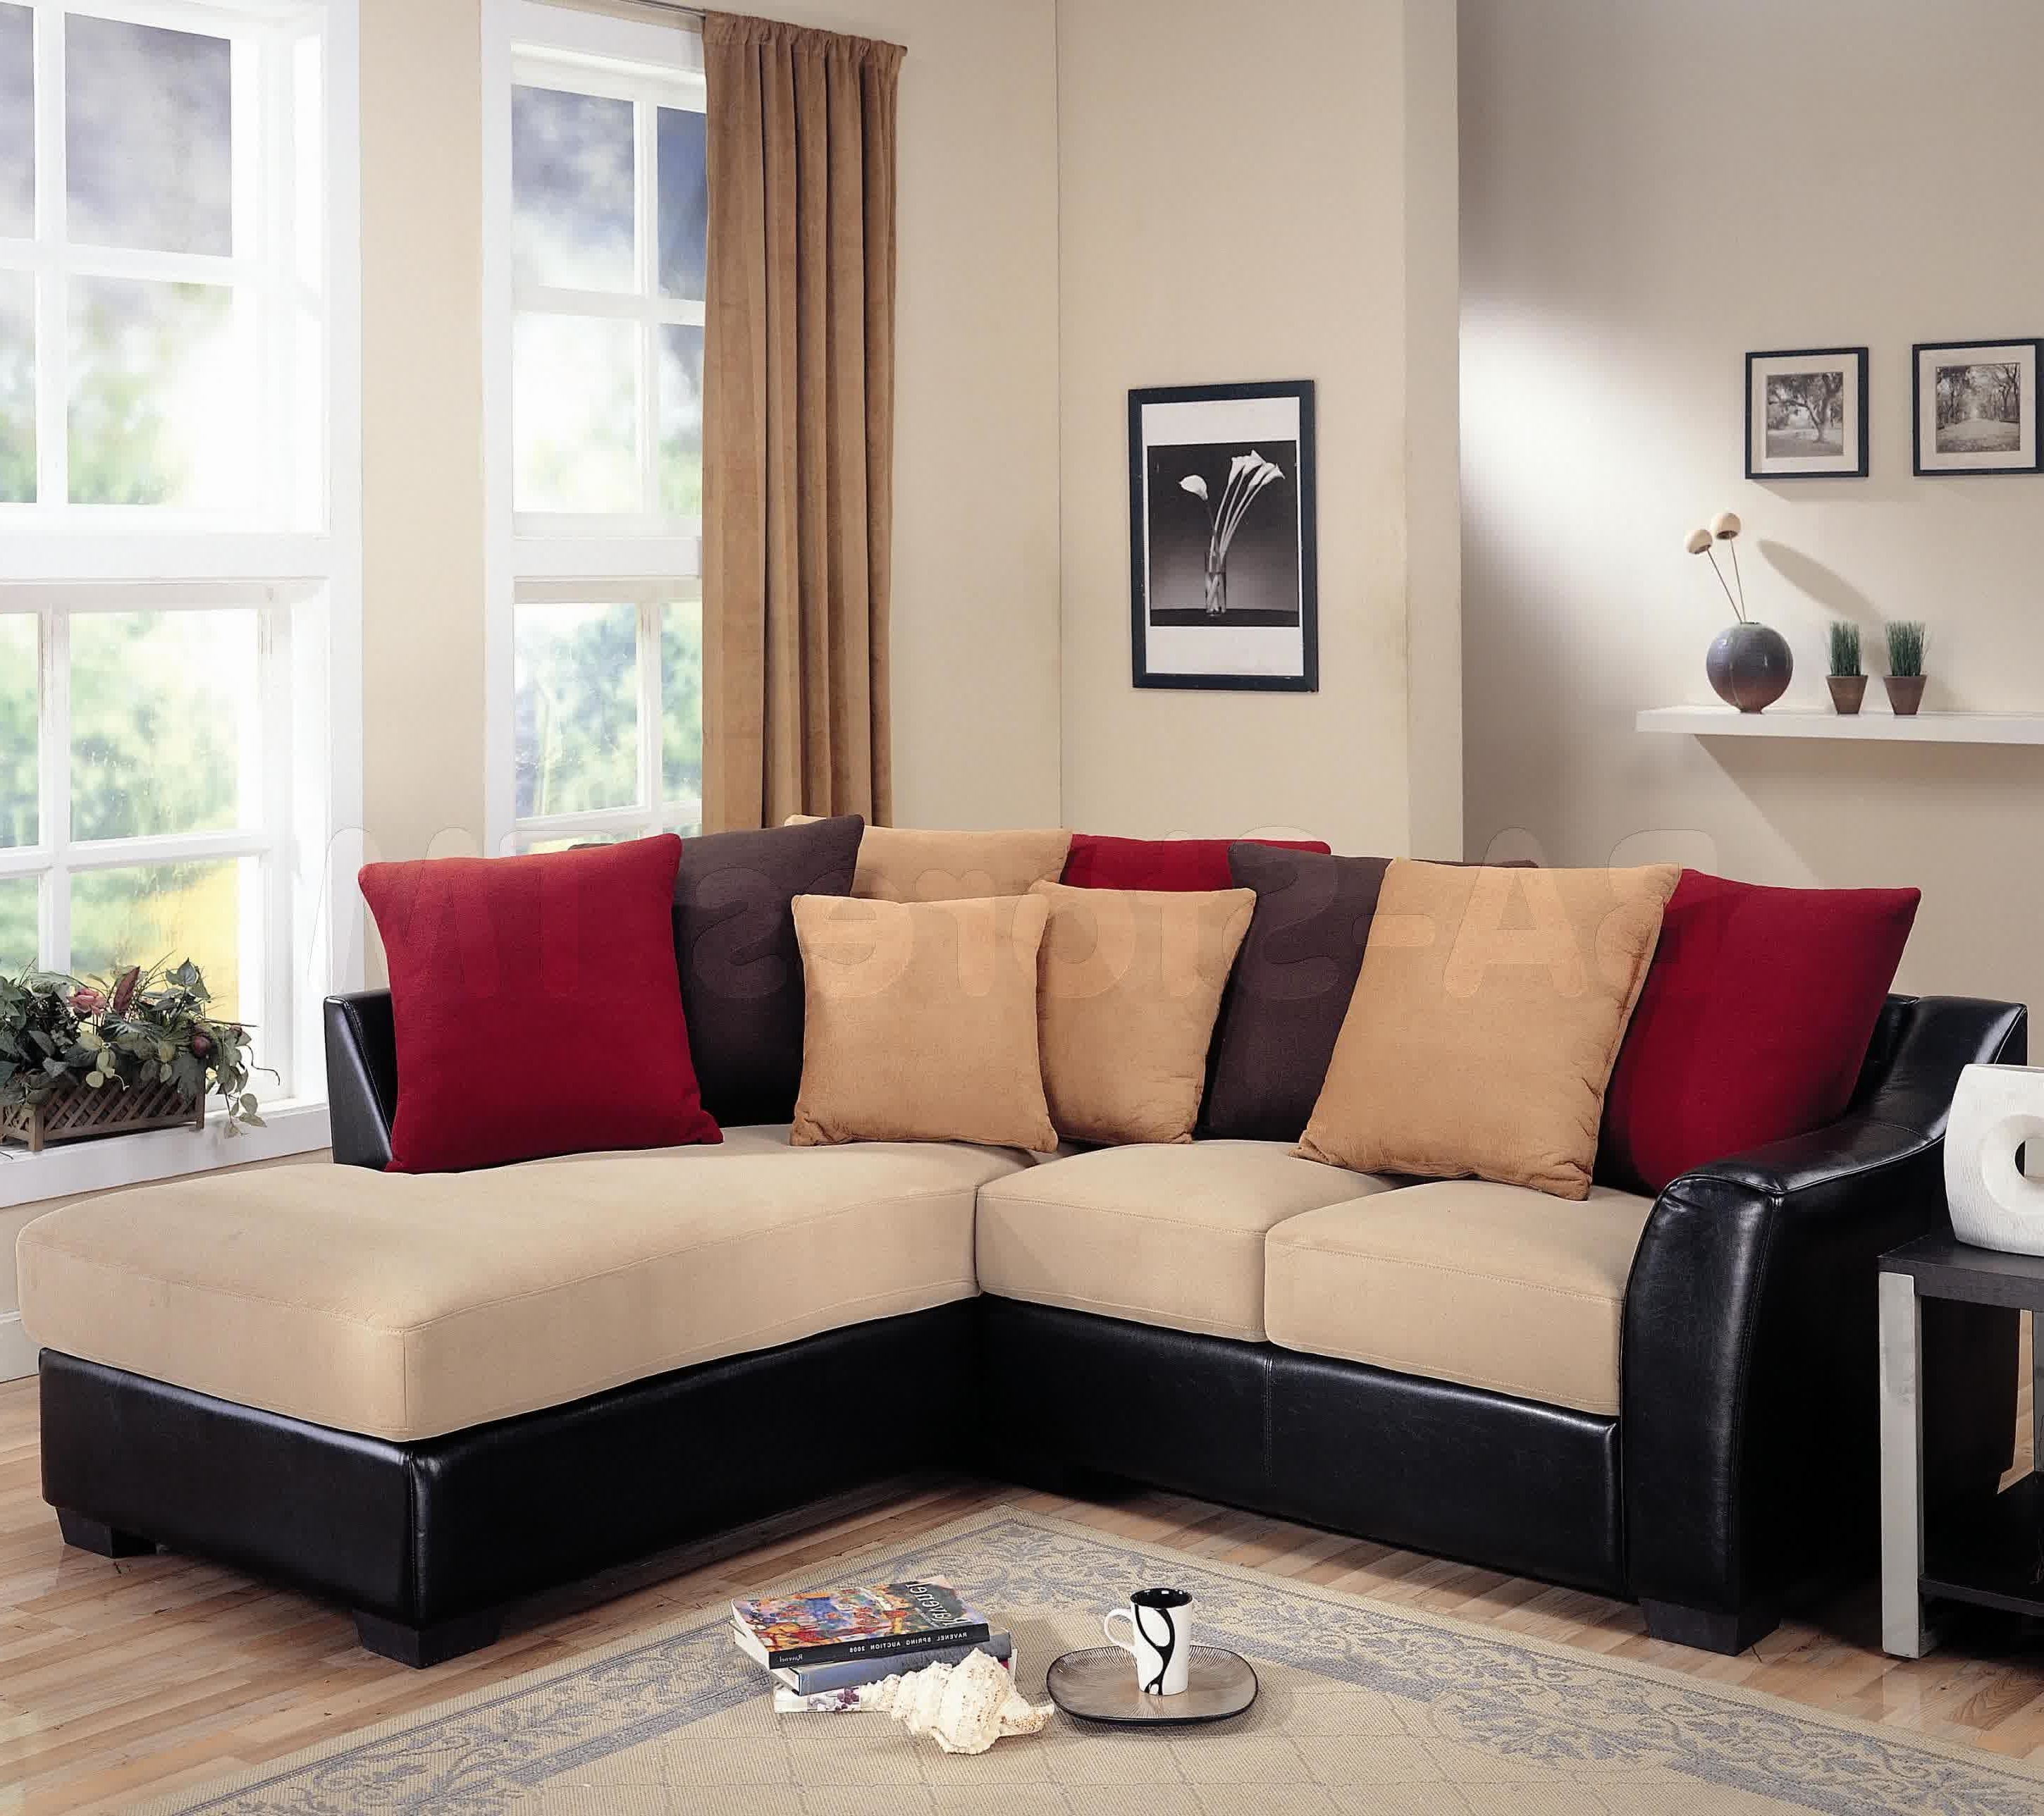 Sectional Sofas Under 600 With Regard To 2019 Home Designs : Bobs Living Room Sets Cheap Sectional Sofas Under (View 9 of 20)